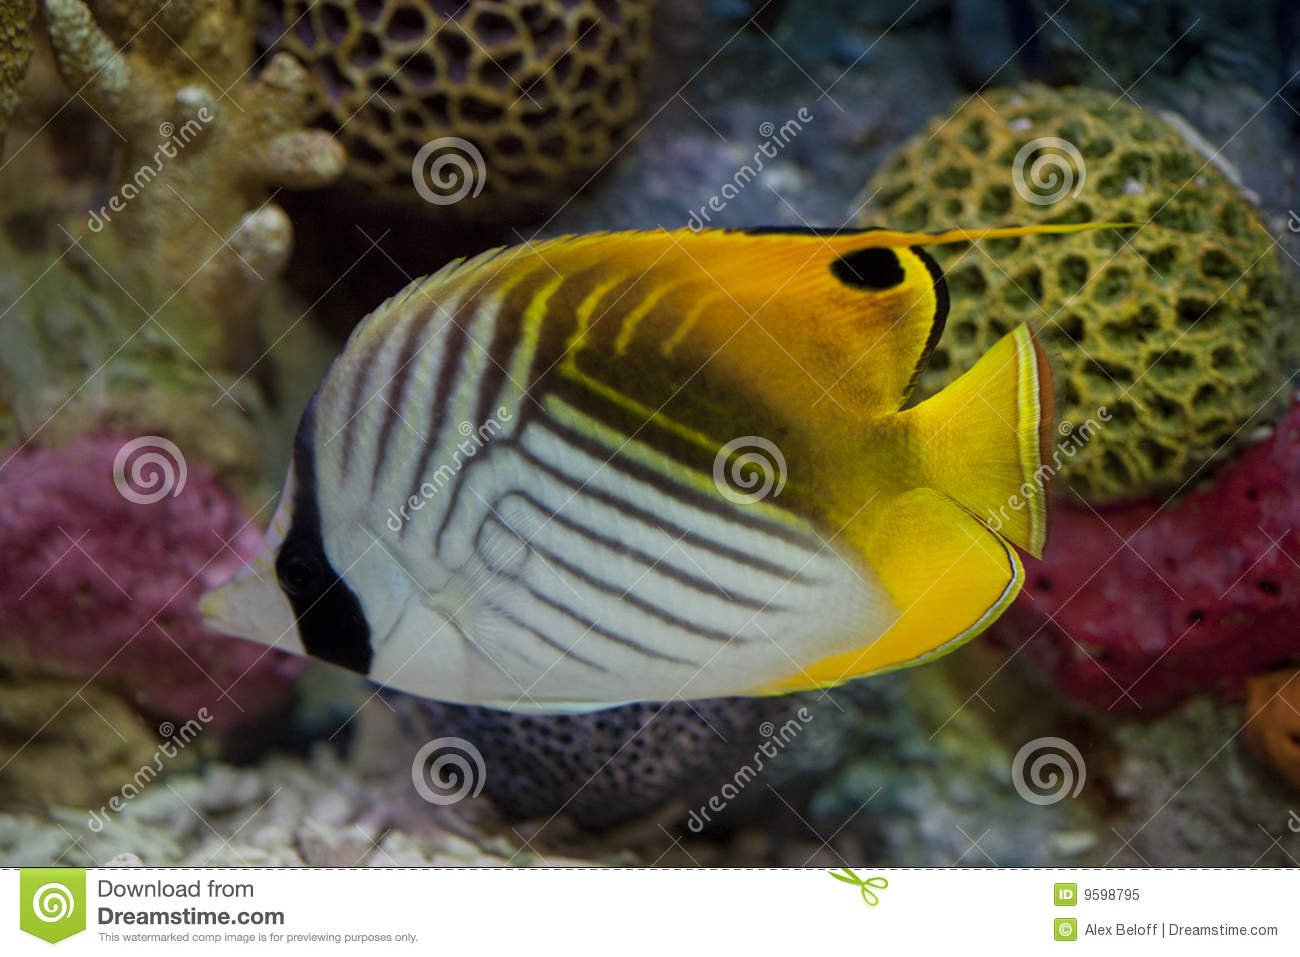 Exotic fish in tank royalty free stock photo image 9598795 for Exotic tropical fish